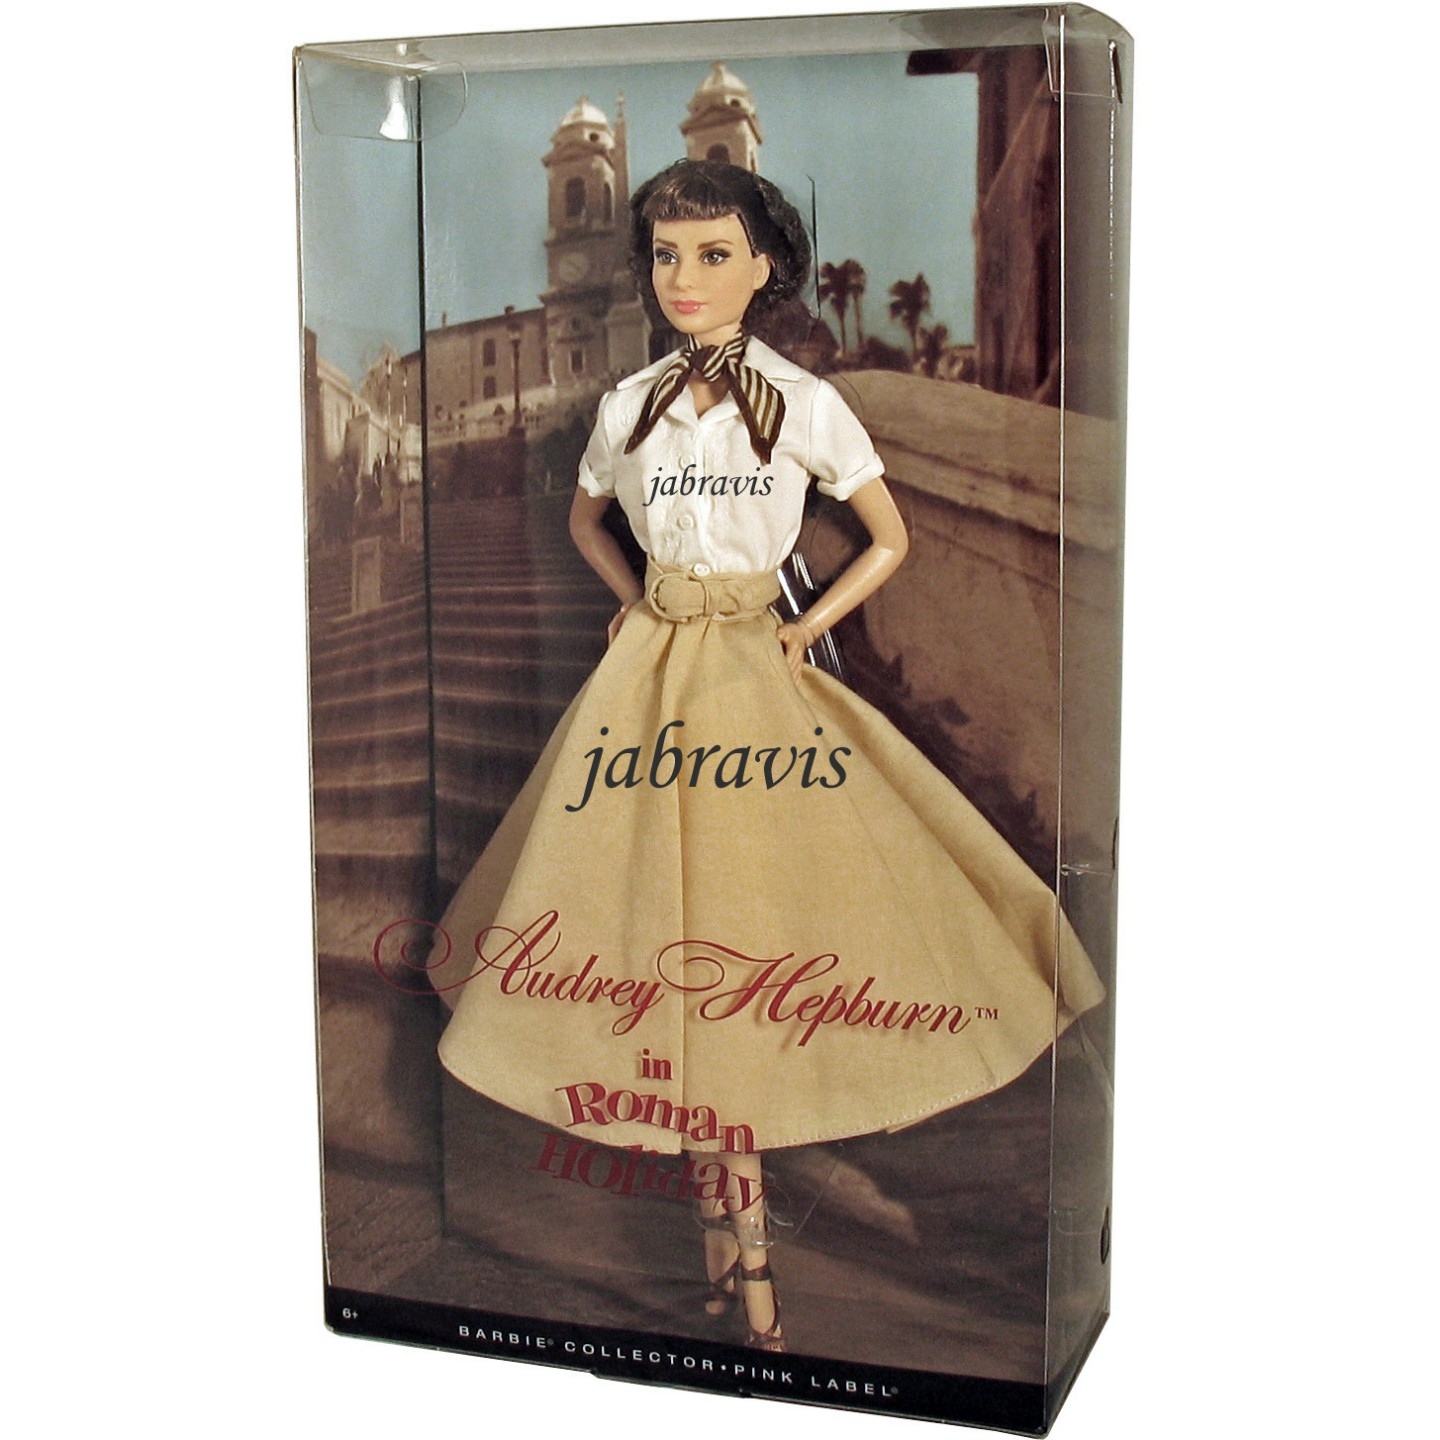 Barbie Collector 2013 AUDREY HEPBURN In ROMAN HOLIDAY Doll NRFB IN HAND EBay